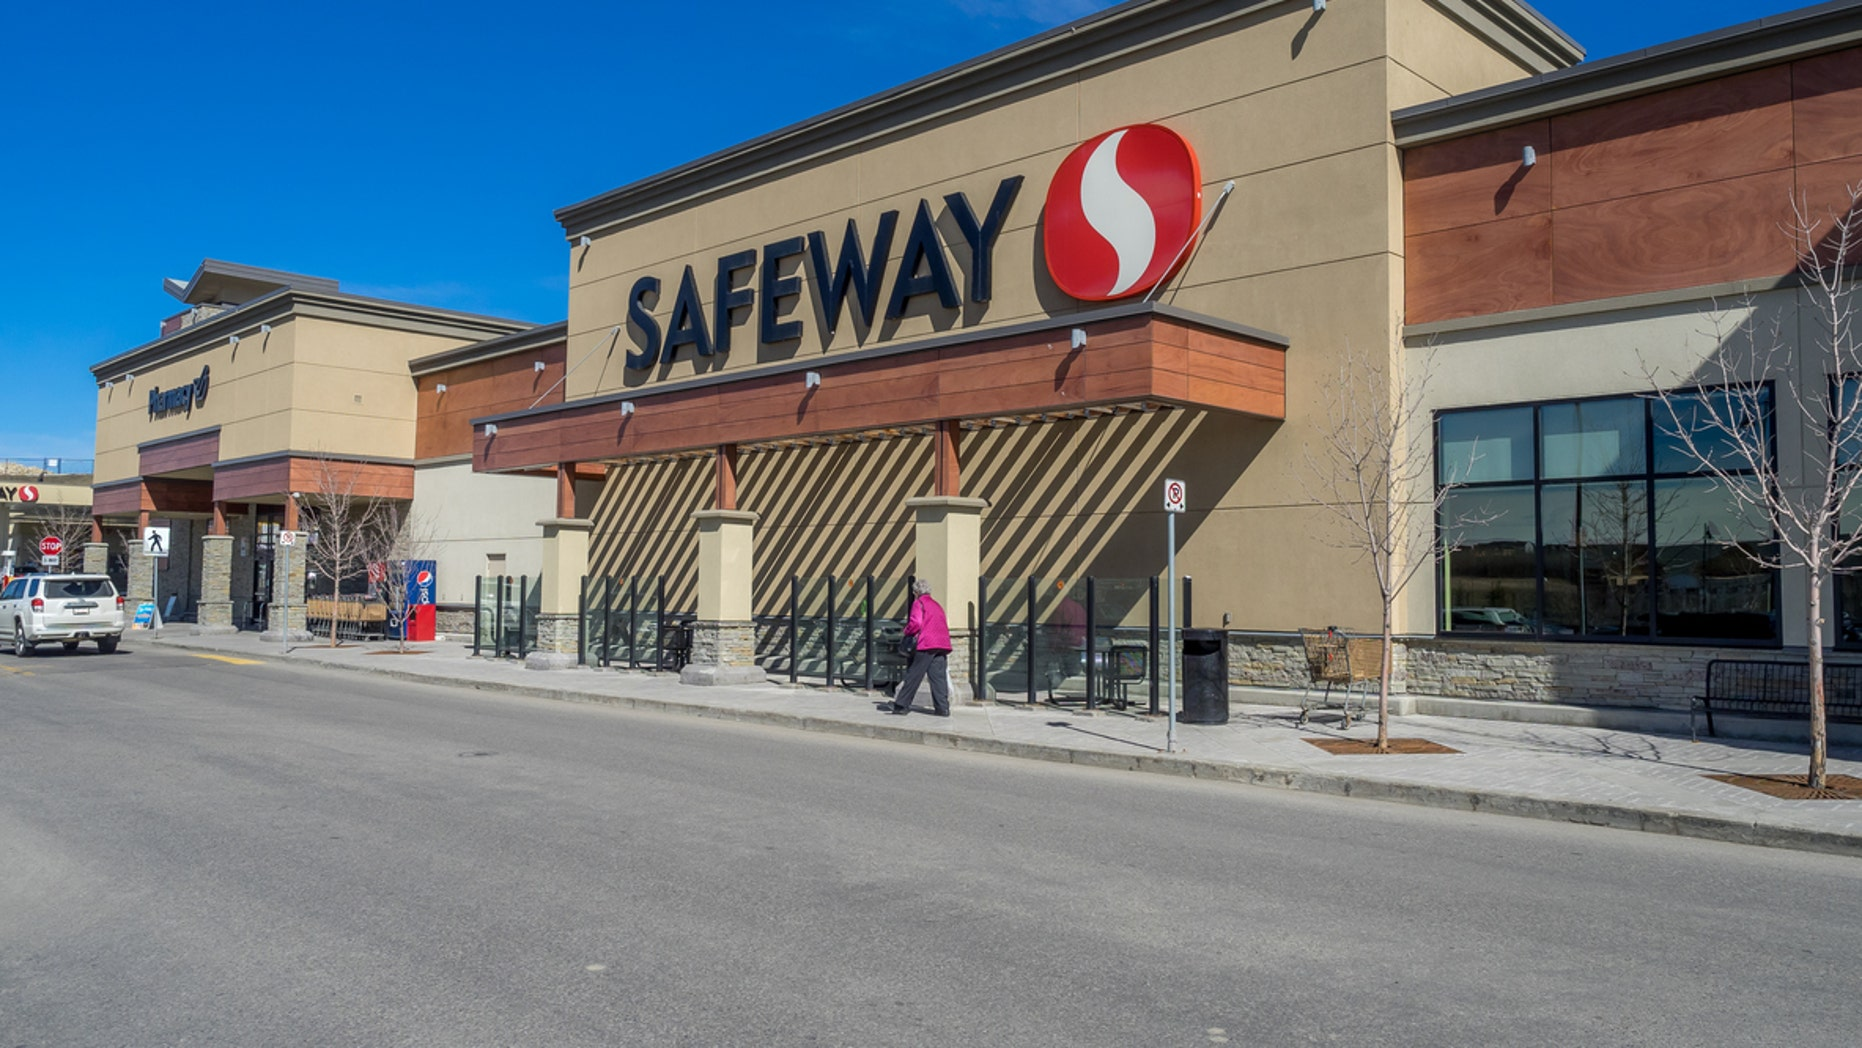 Safeway employees called the cops on a woman and her family handing out food to the homeless in Mountain View, Calif.